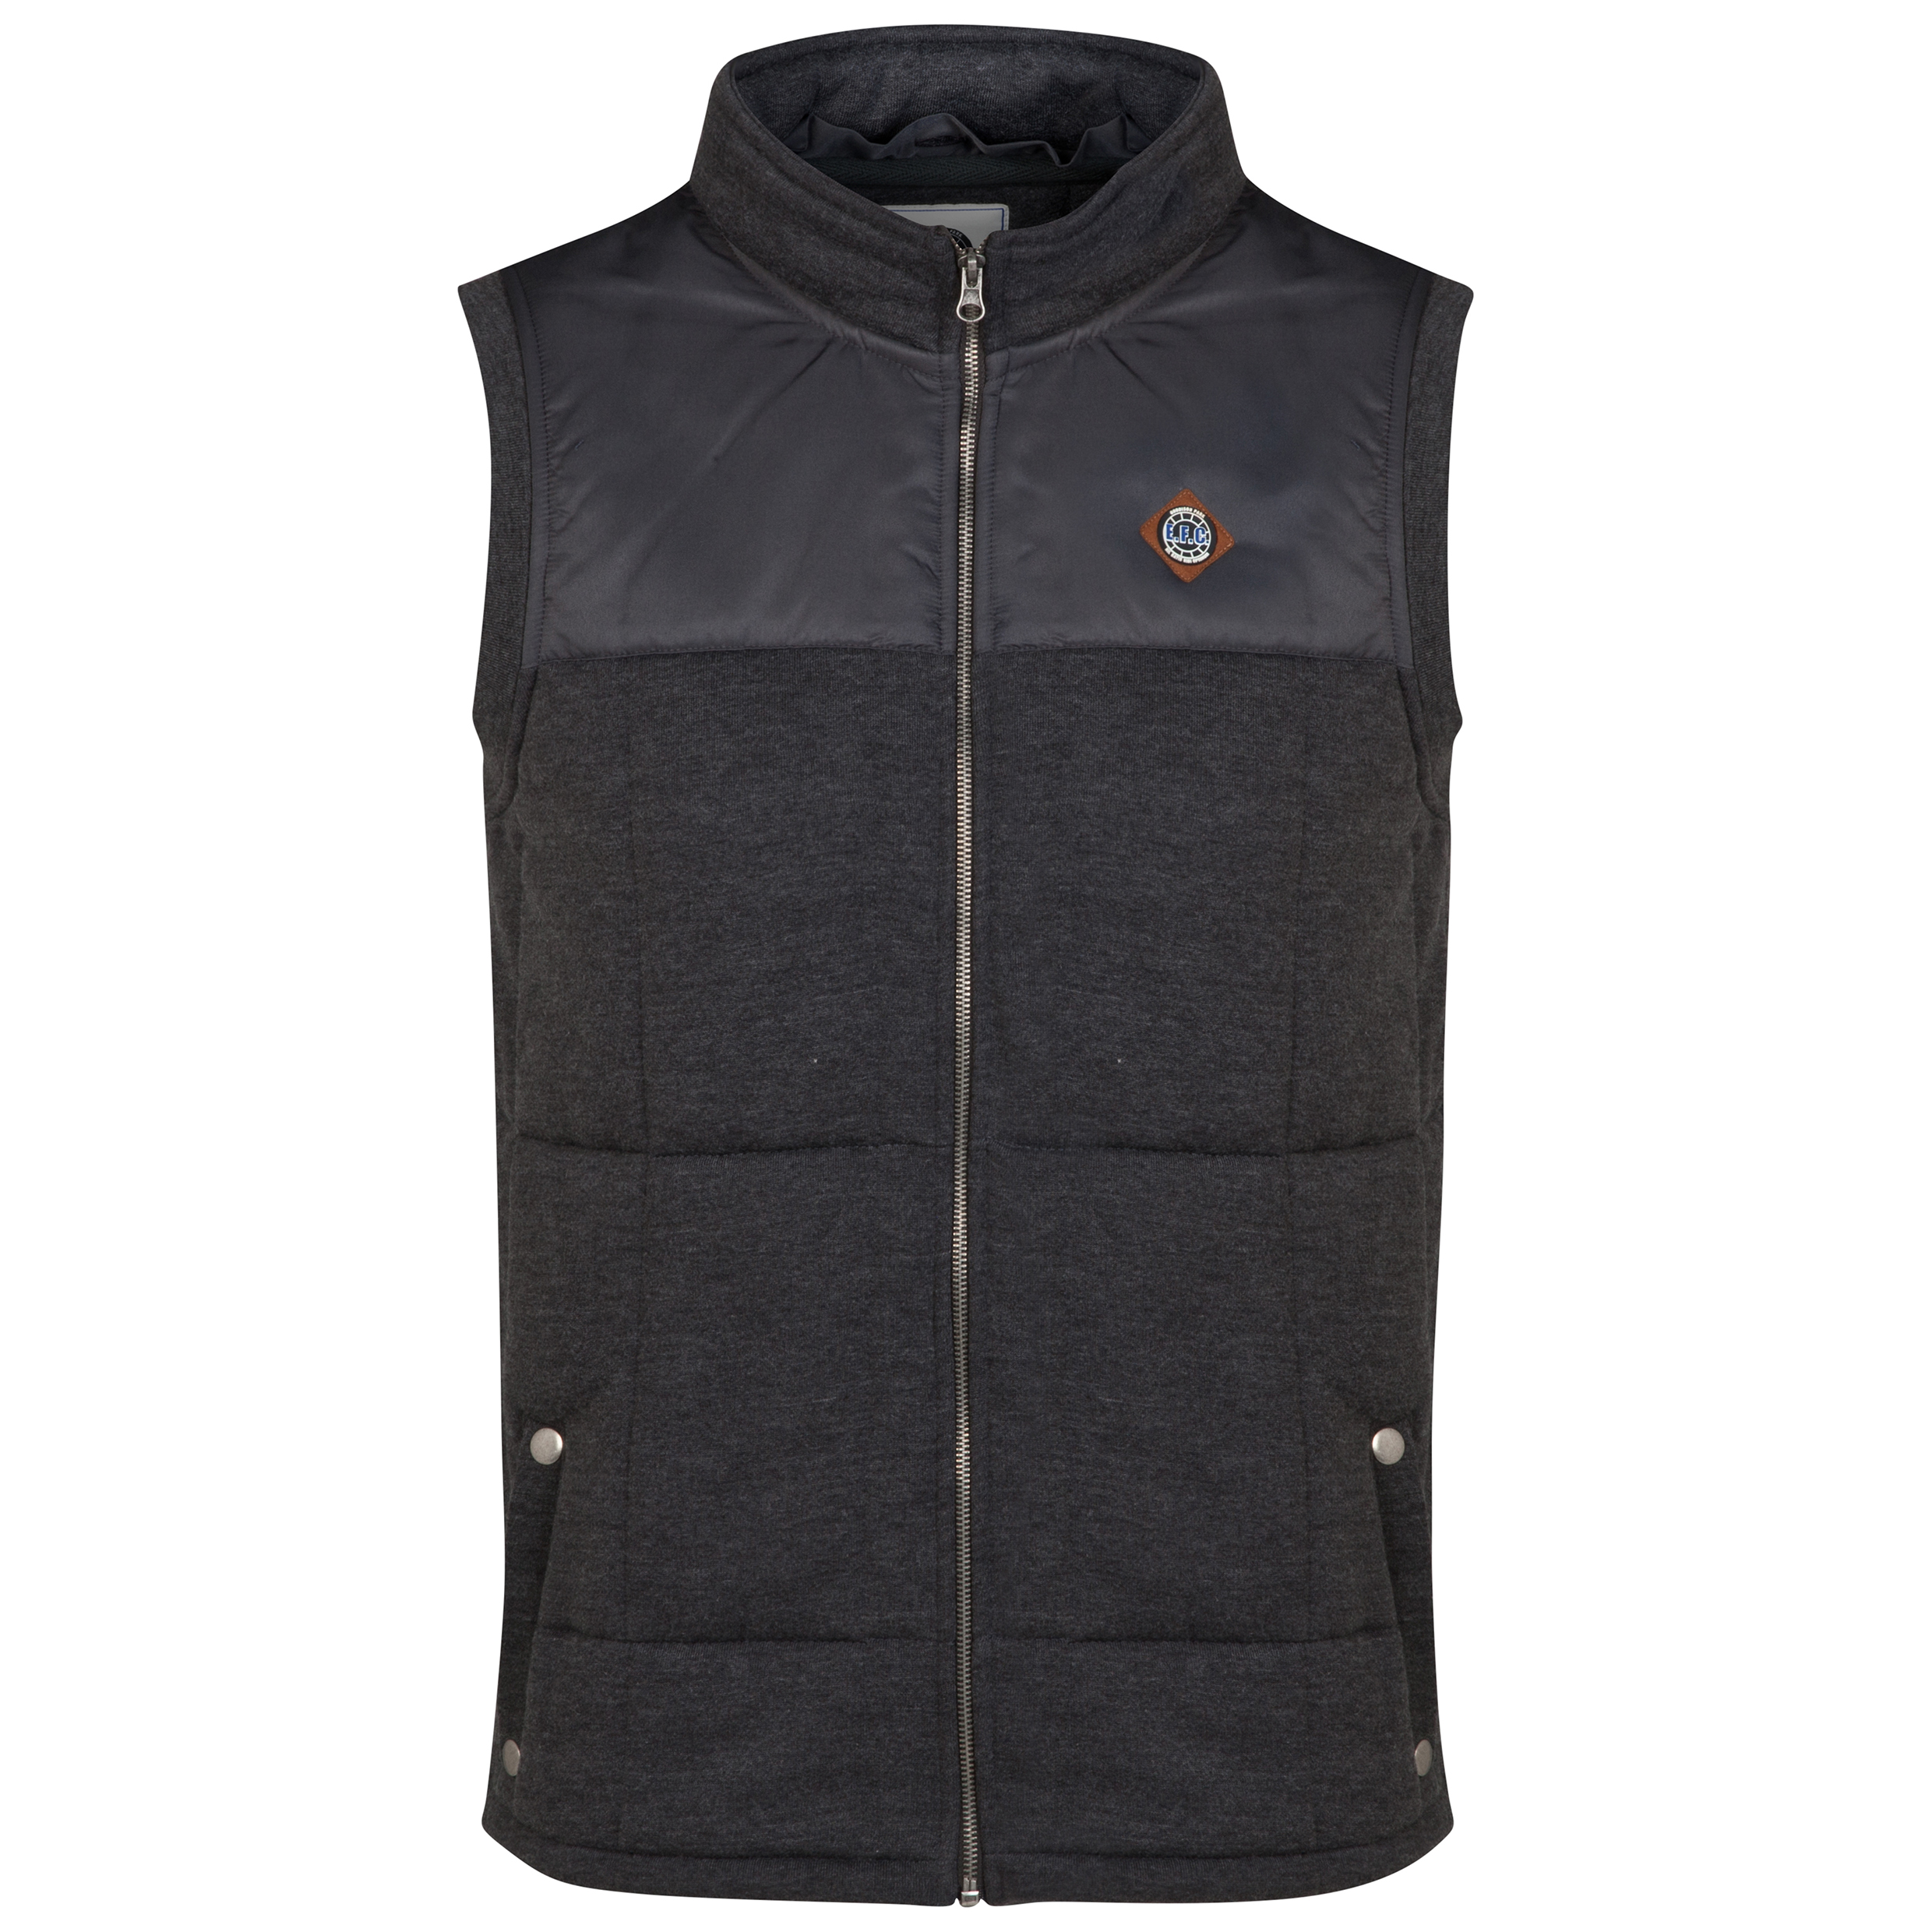 Everton Gilet - Charcoal - Mens